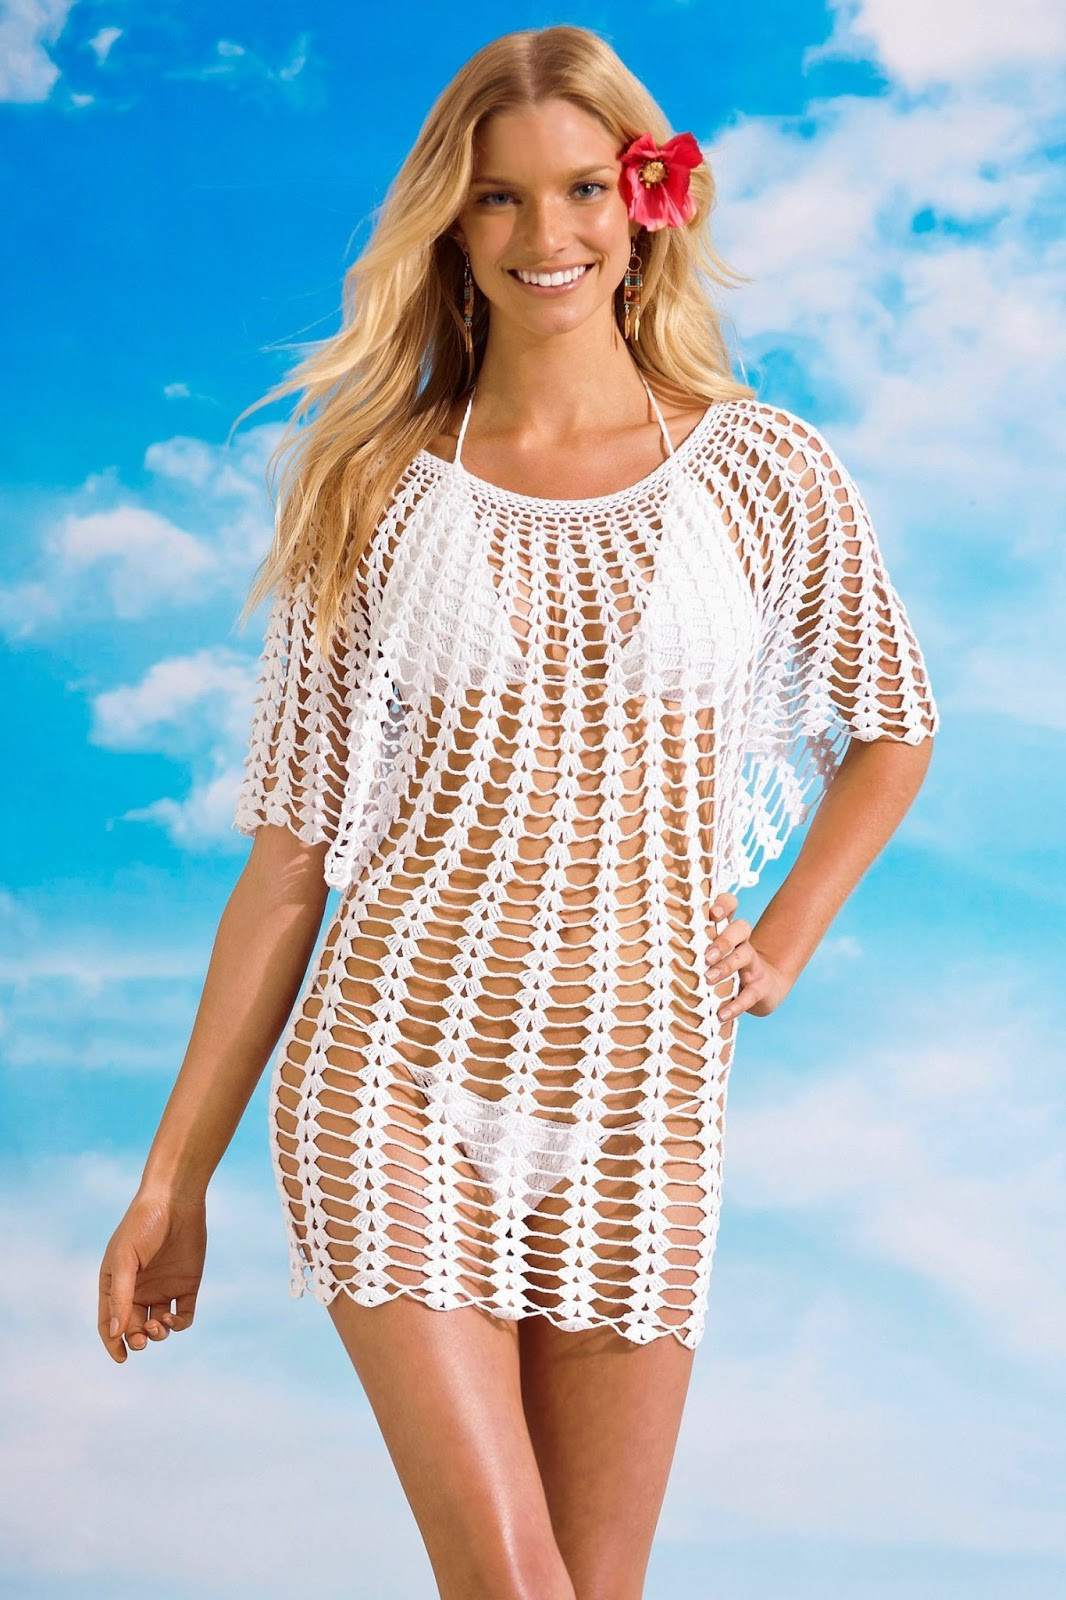 Crochet Cover Up New Fashion Crochet Sesy Crochet Beach Cover Ups Of Adorable 40 Pictures Crochet Cover Up